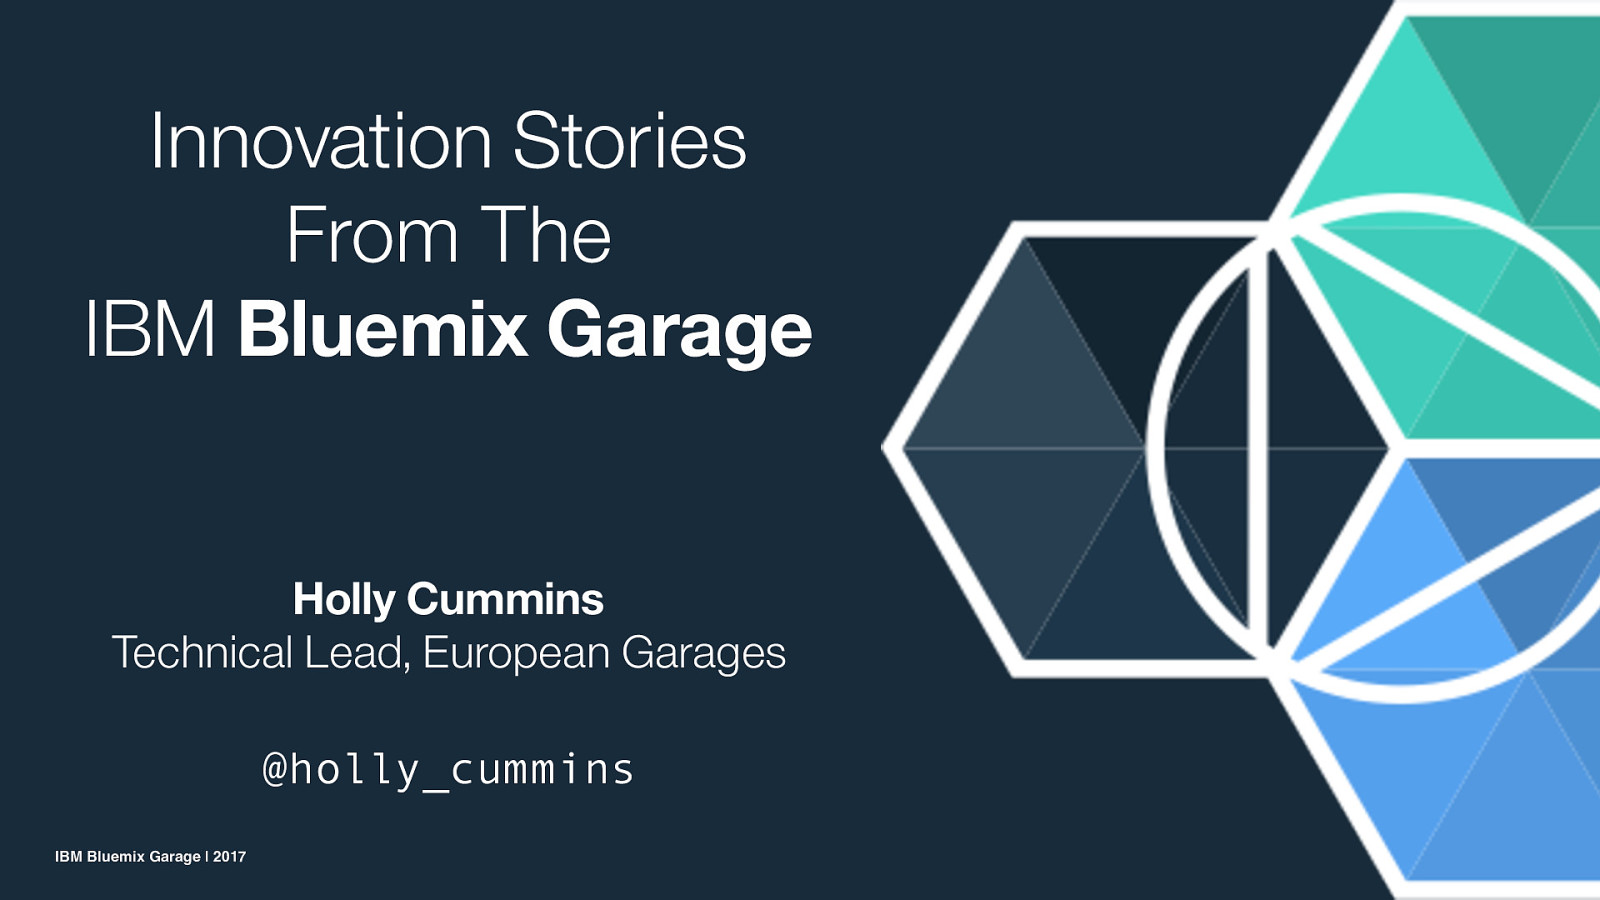 Innovation Stories from the Bluemix Garage